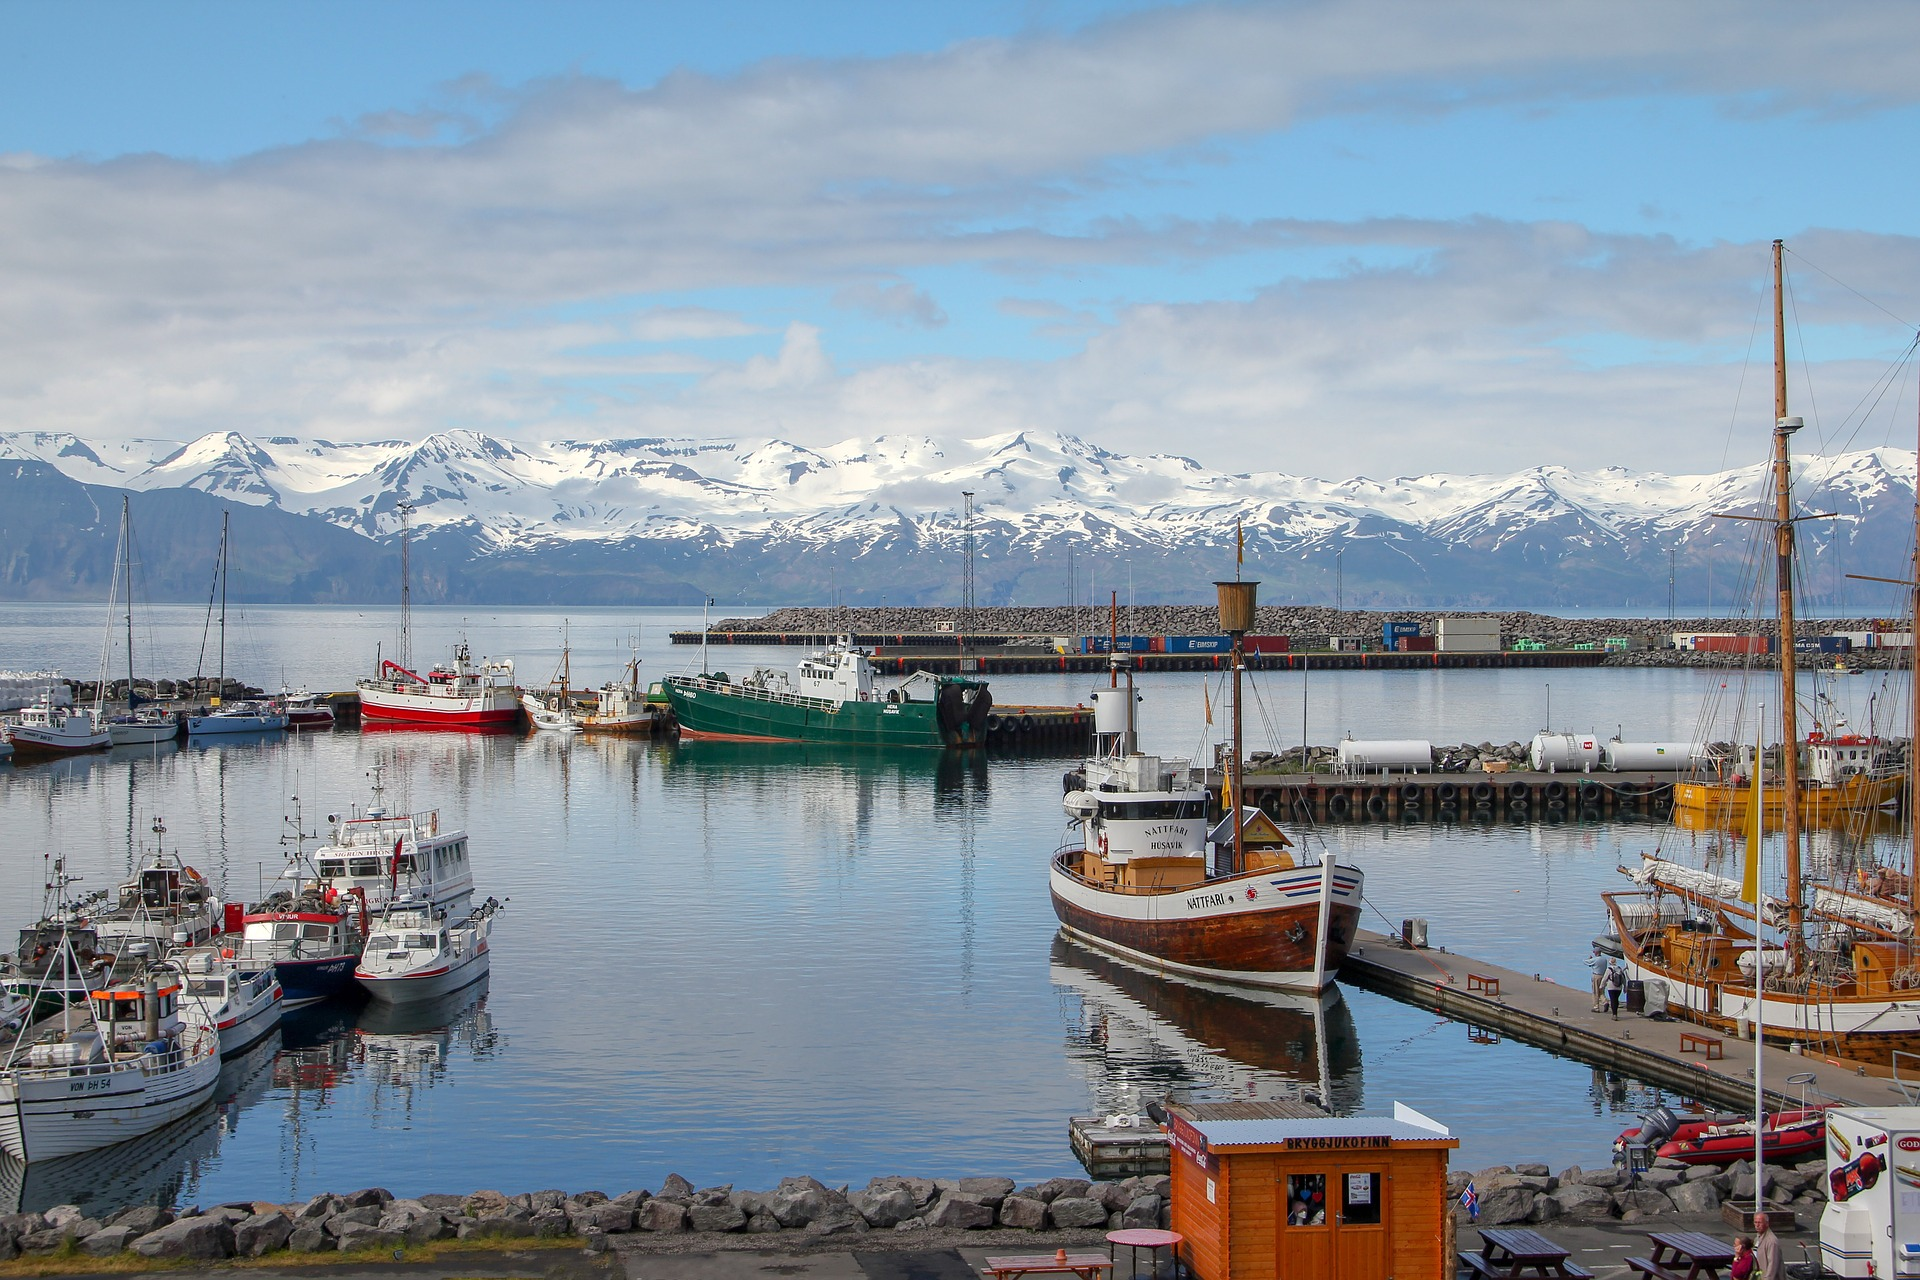 fishing harbor of Husavik with boats, docks, sea, mountains on the background